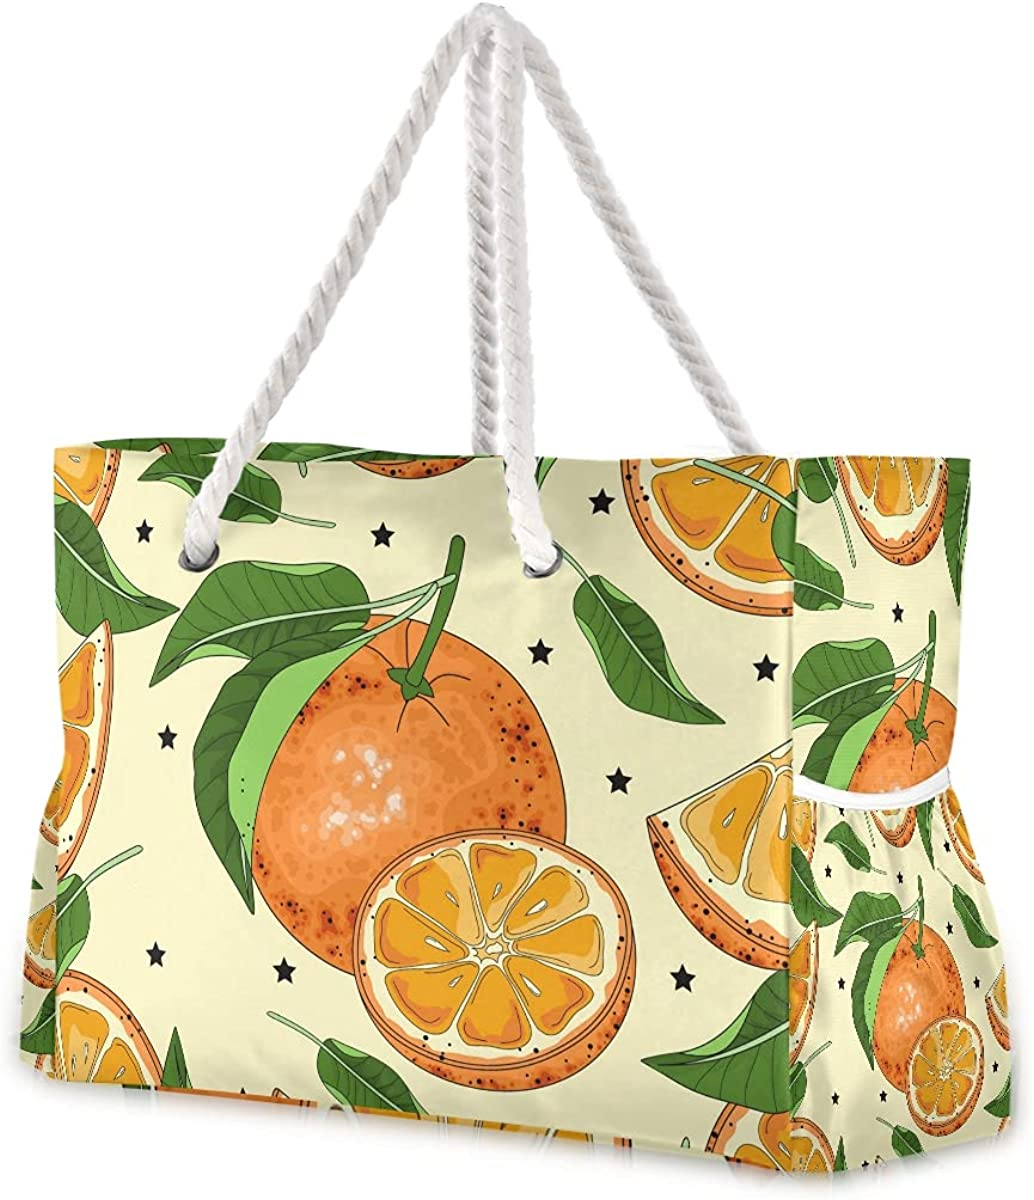 Oranges Super sale period limited Slices Sketch Super beauty product restock quality top Beach Bags Extra for Large Travel To Women